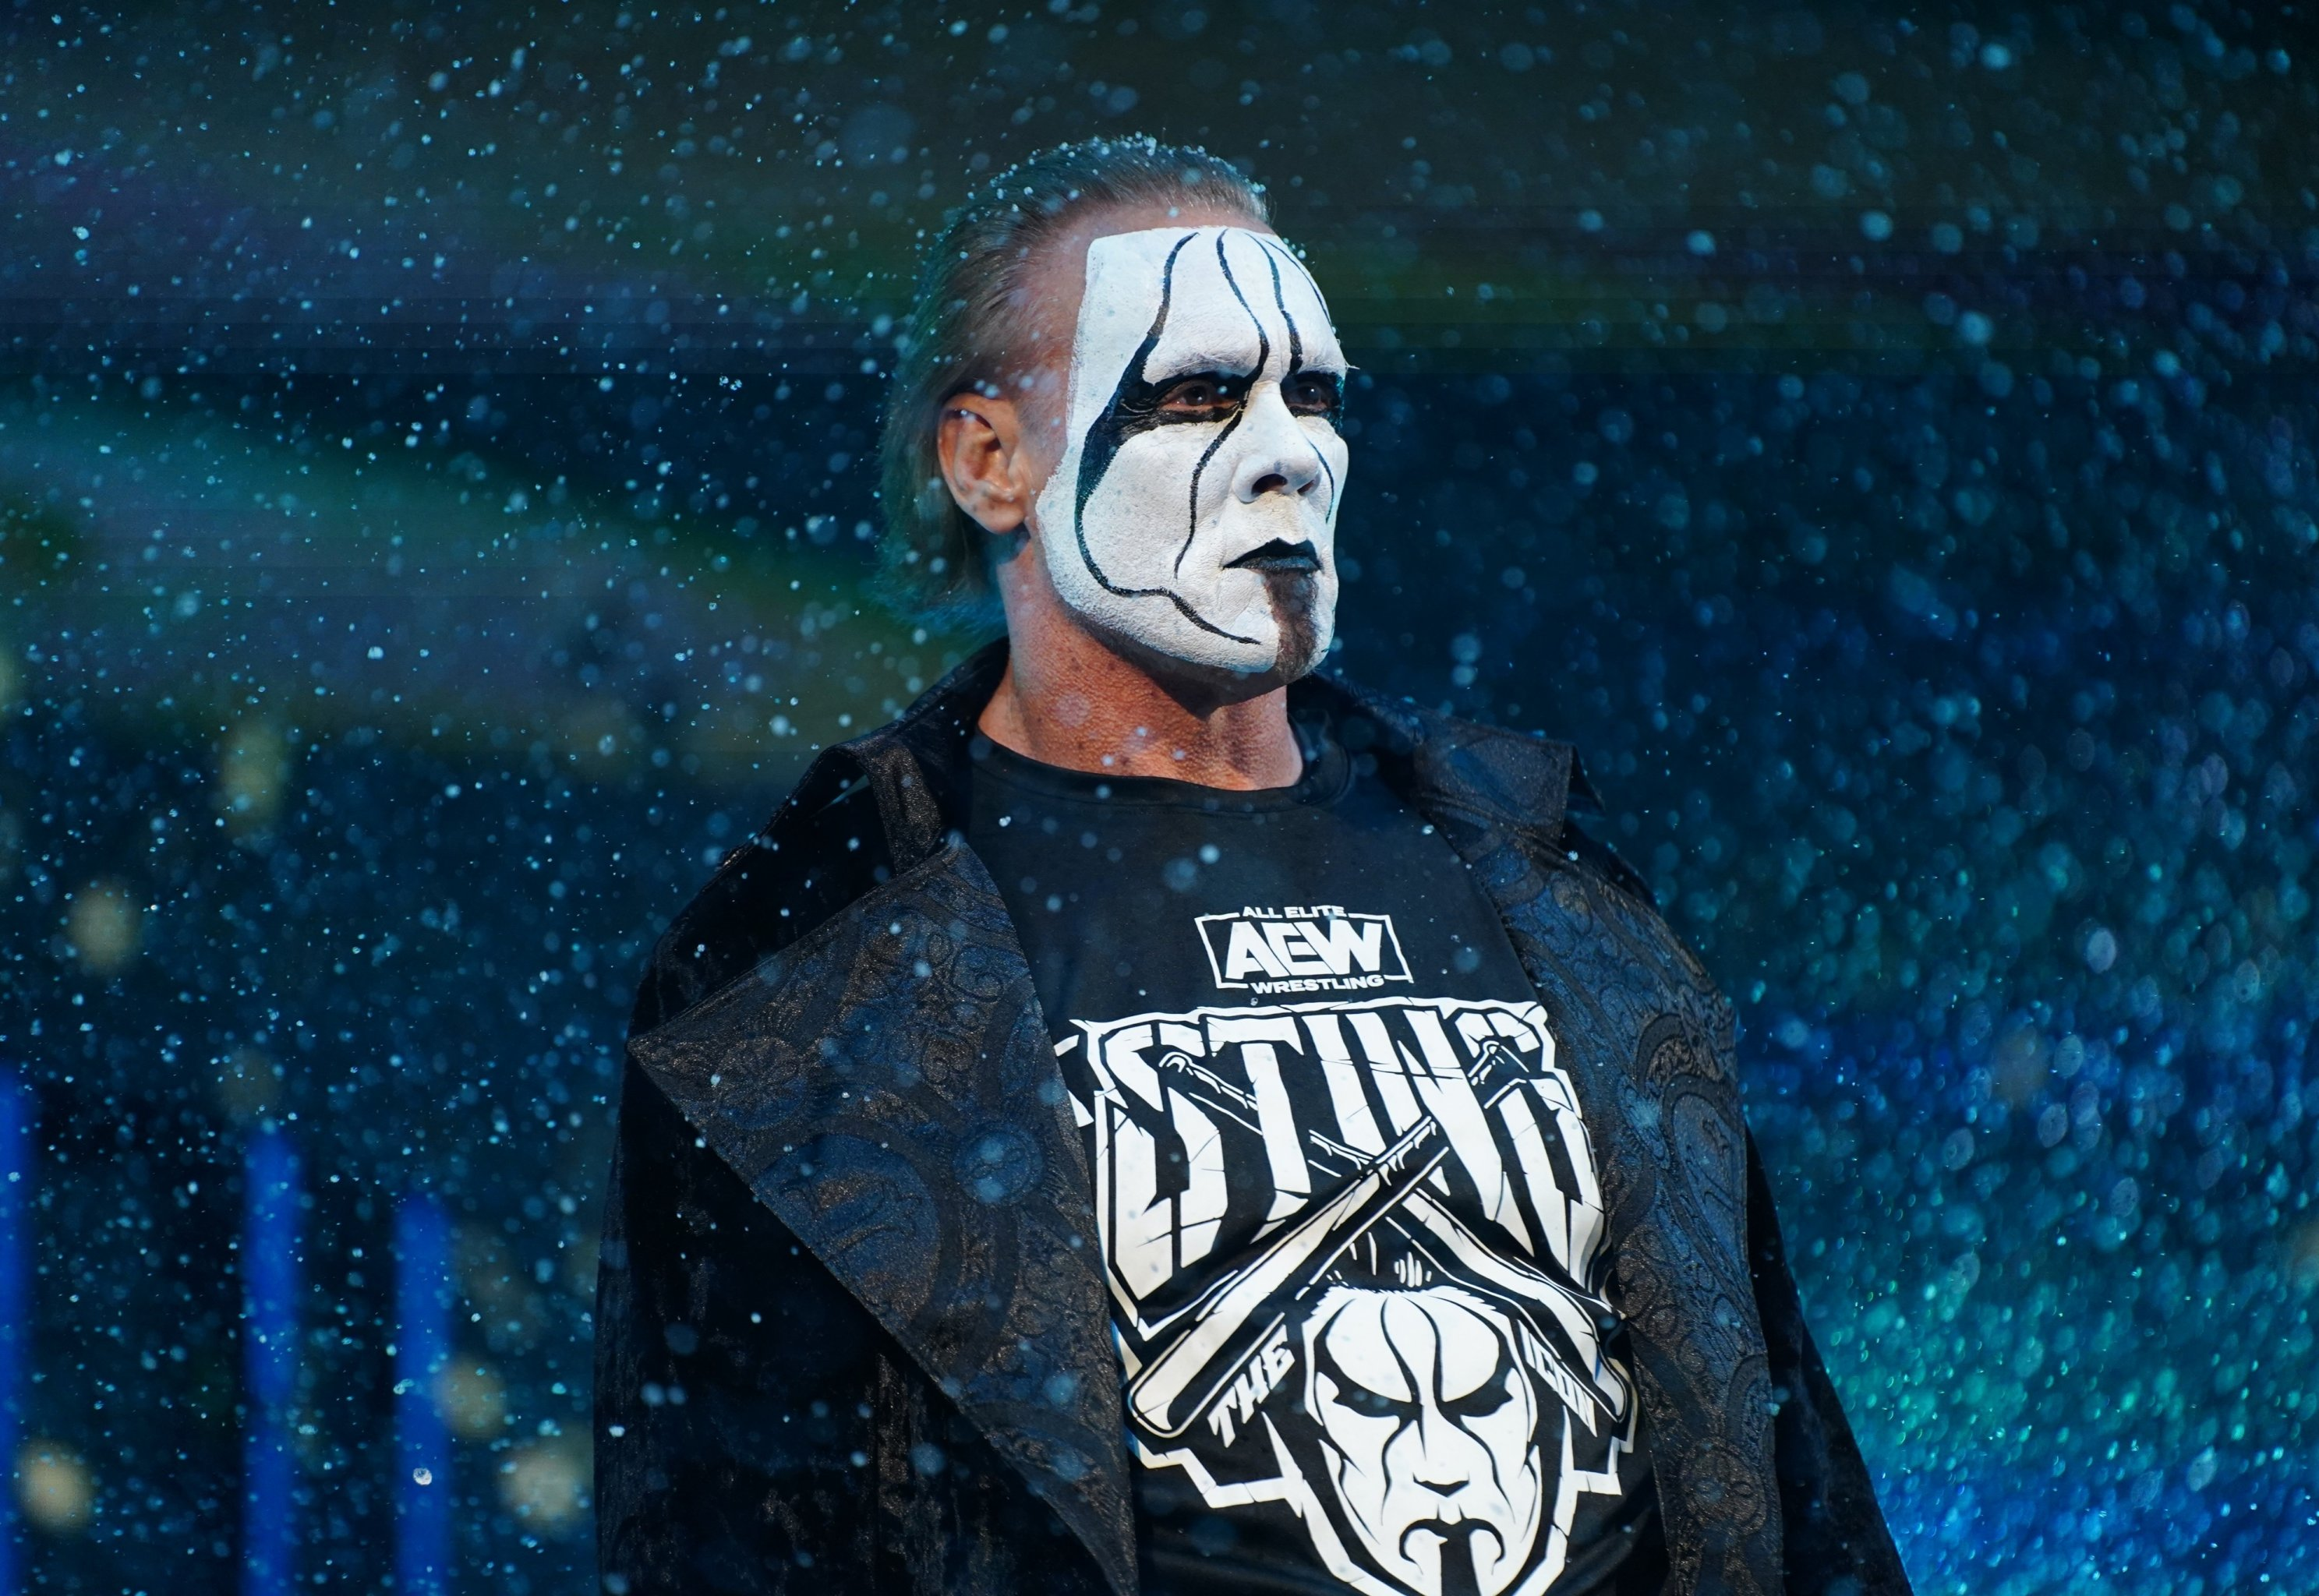 Backstage WWE and AEW Rumors: Latest on Sting, Braun Strowman and More | Bleacher Report | Latest News, Videos and Highlights